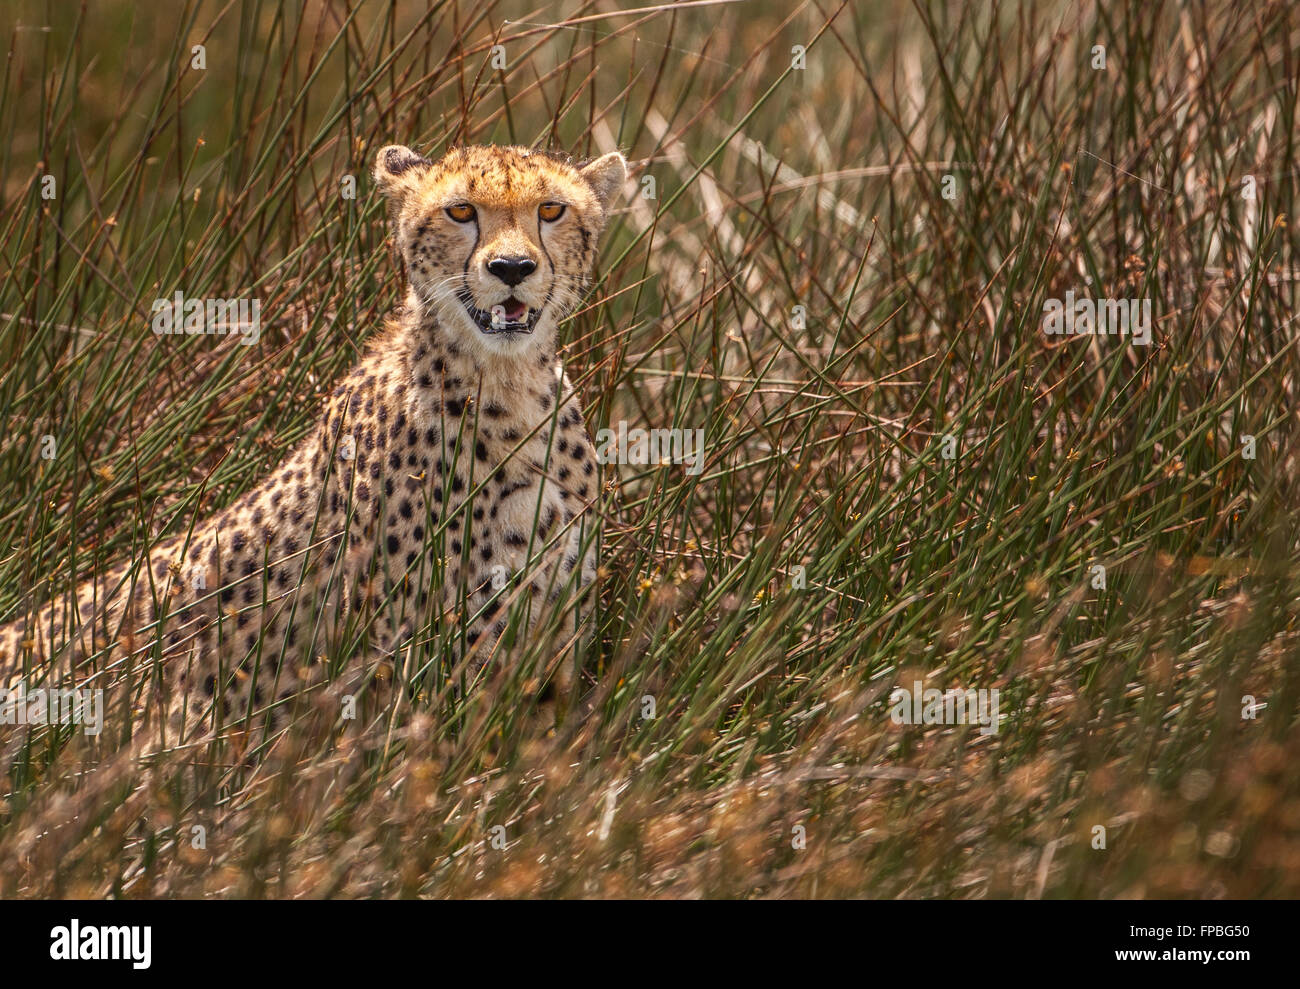 Cheetah sitting in tall reeds near swampy area with mouth open and eyes focused on camera - Stock Image